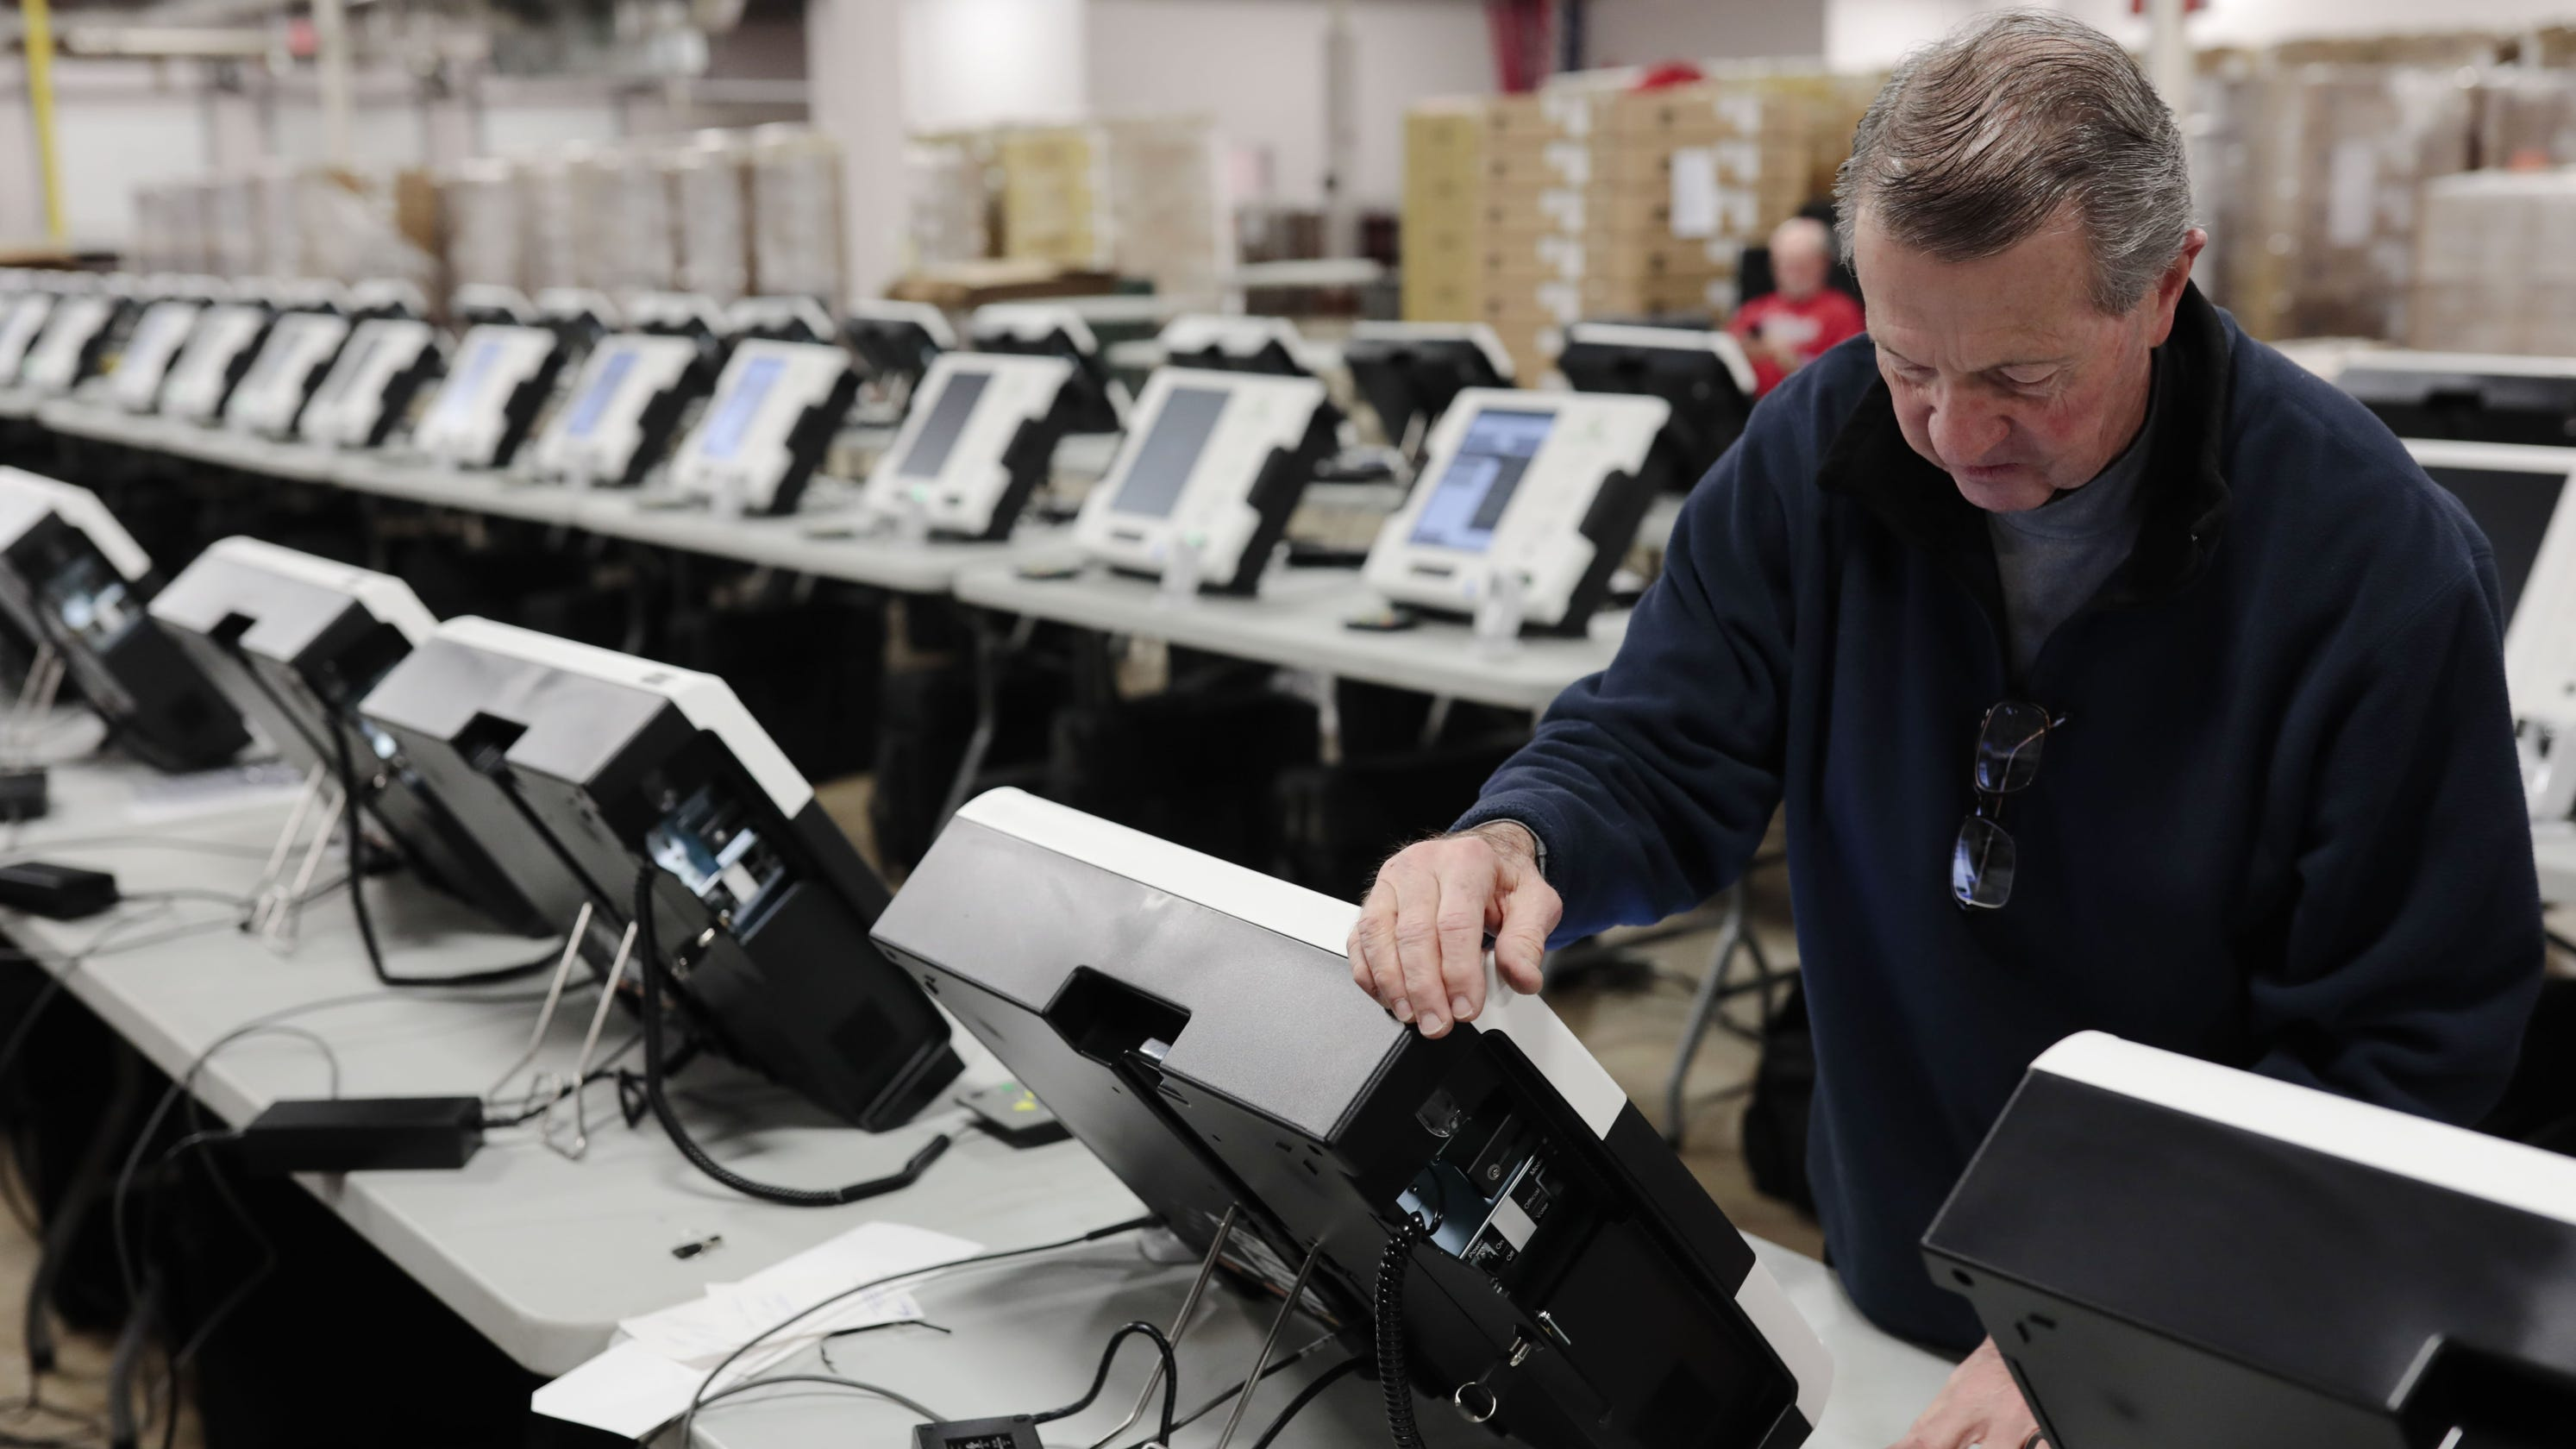 Fact check: False claim that electronic voting software companies Dominion and Smartmatic have closed